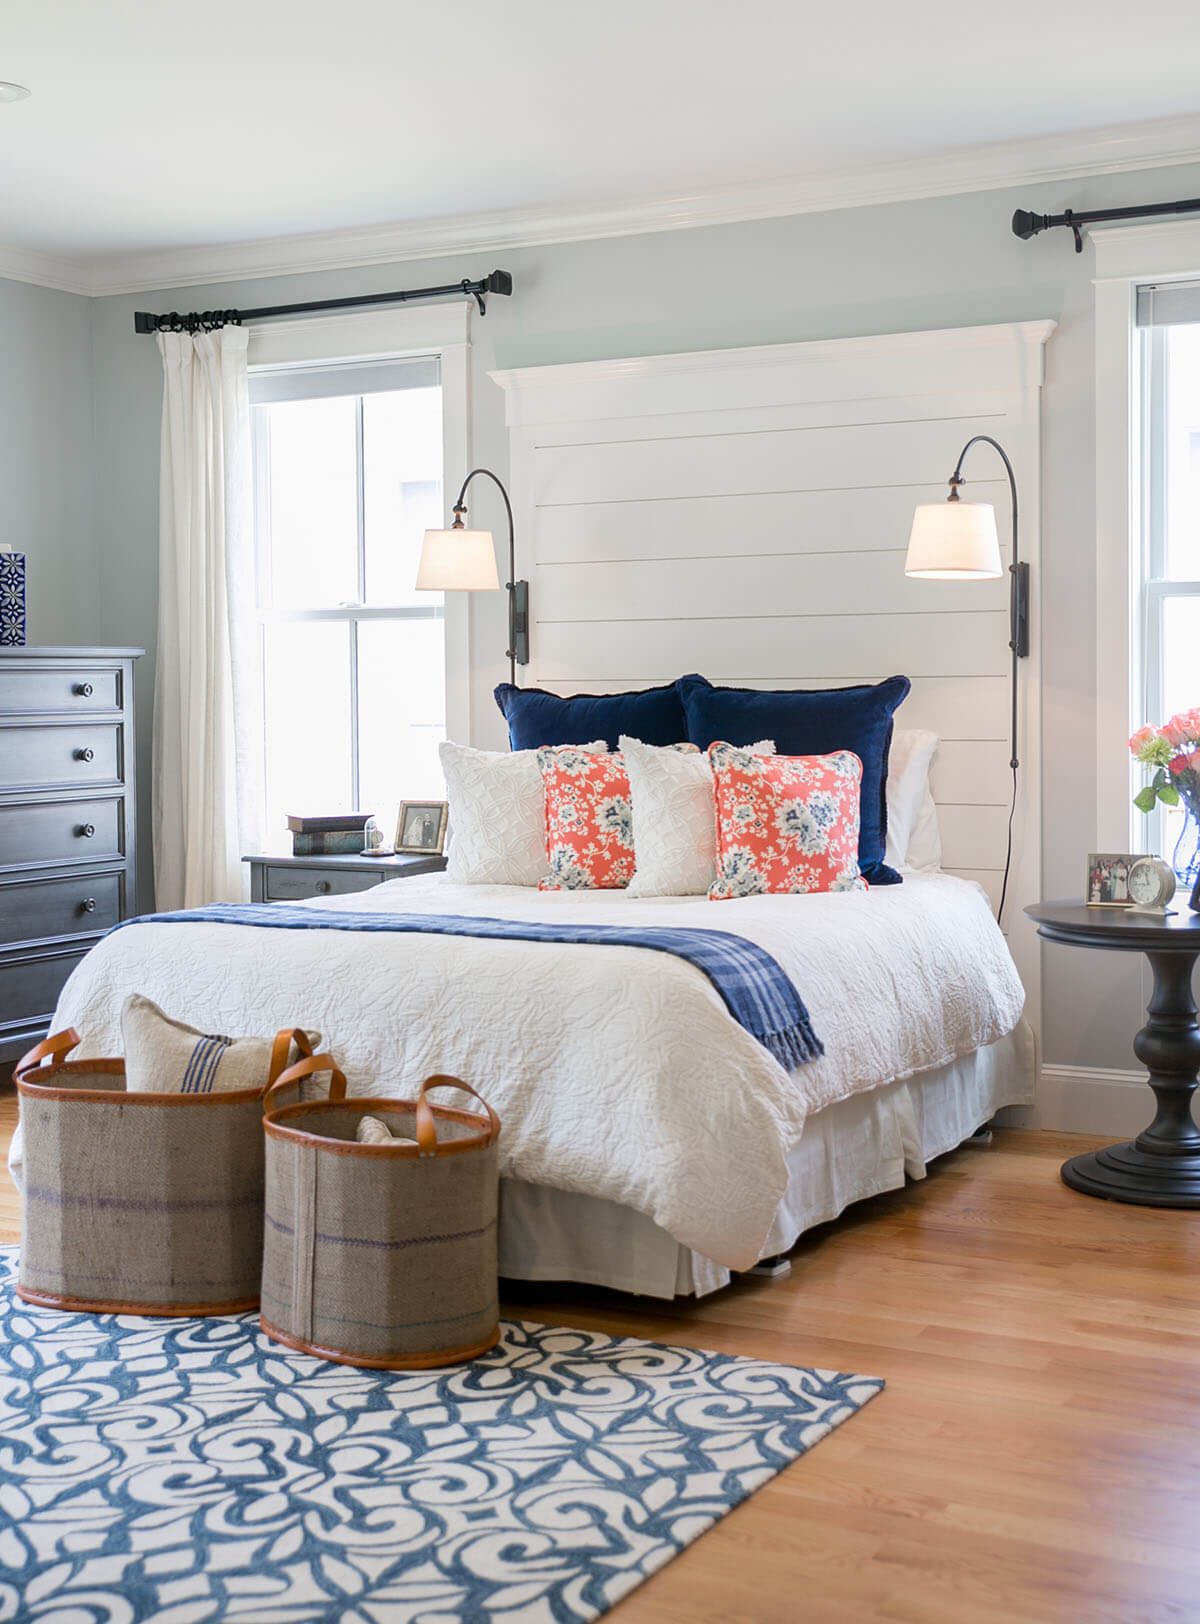 Fascinating Beach Home Interior Design Of A Quaint Bedroom With Bright Accent